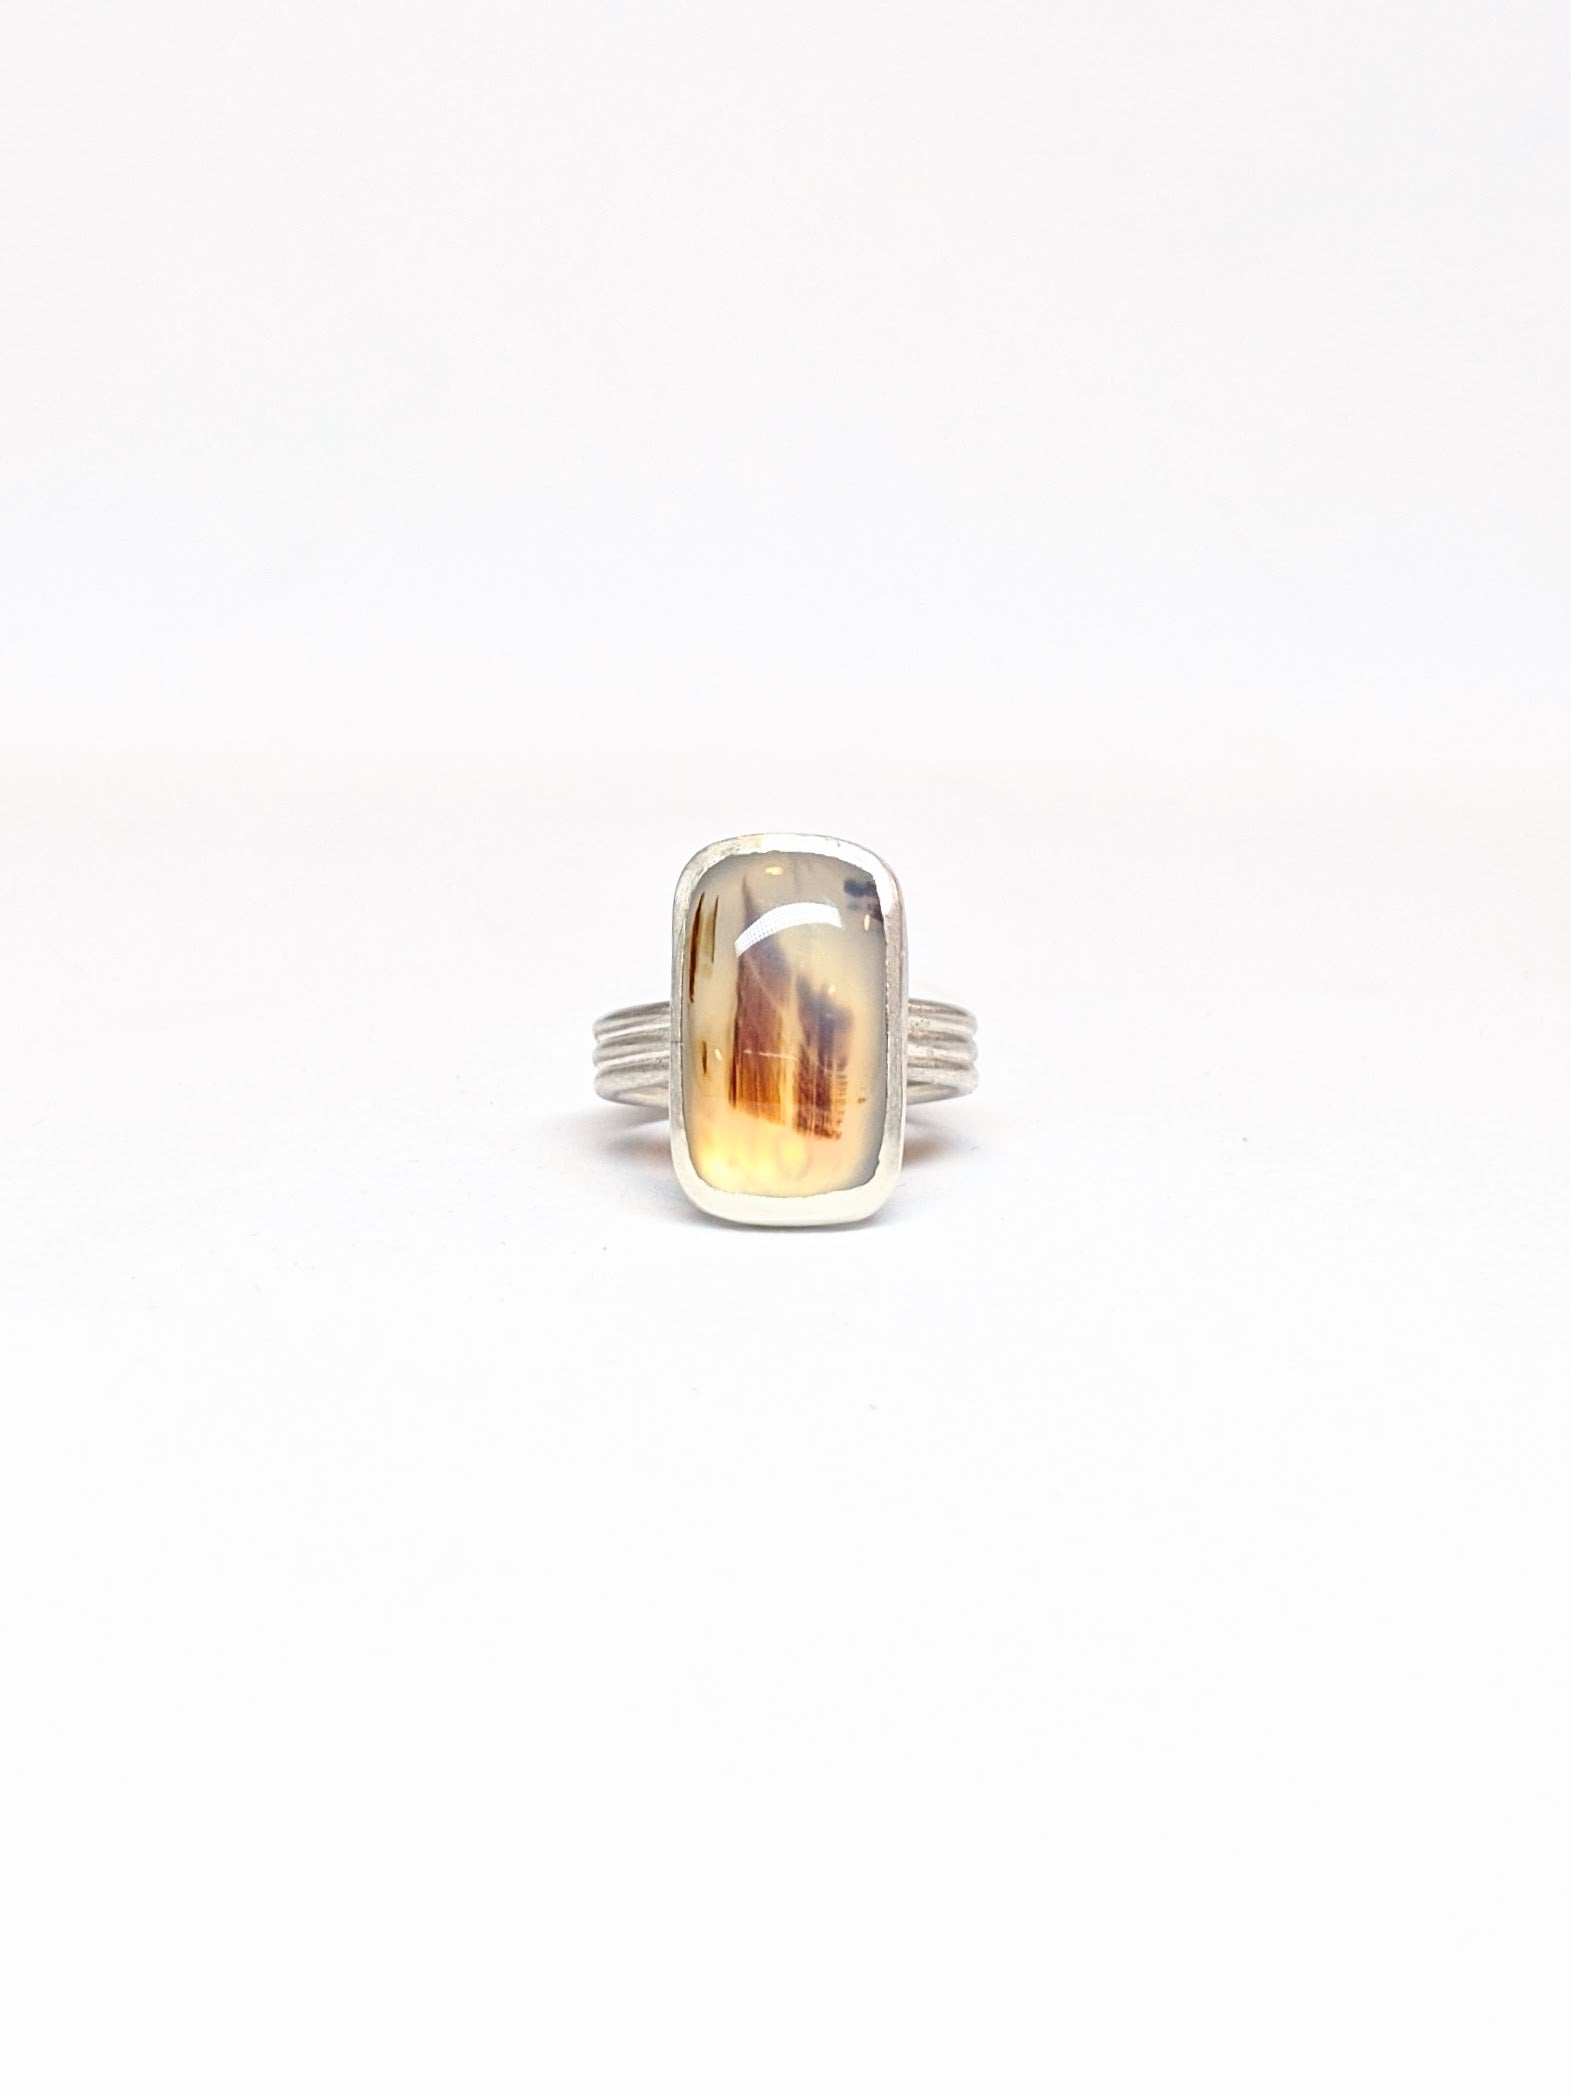 Montana Agate Triple Band Ring - Size 5.25